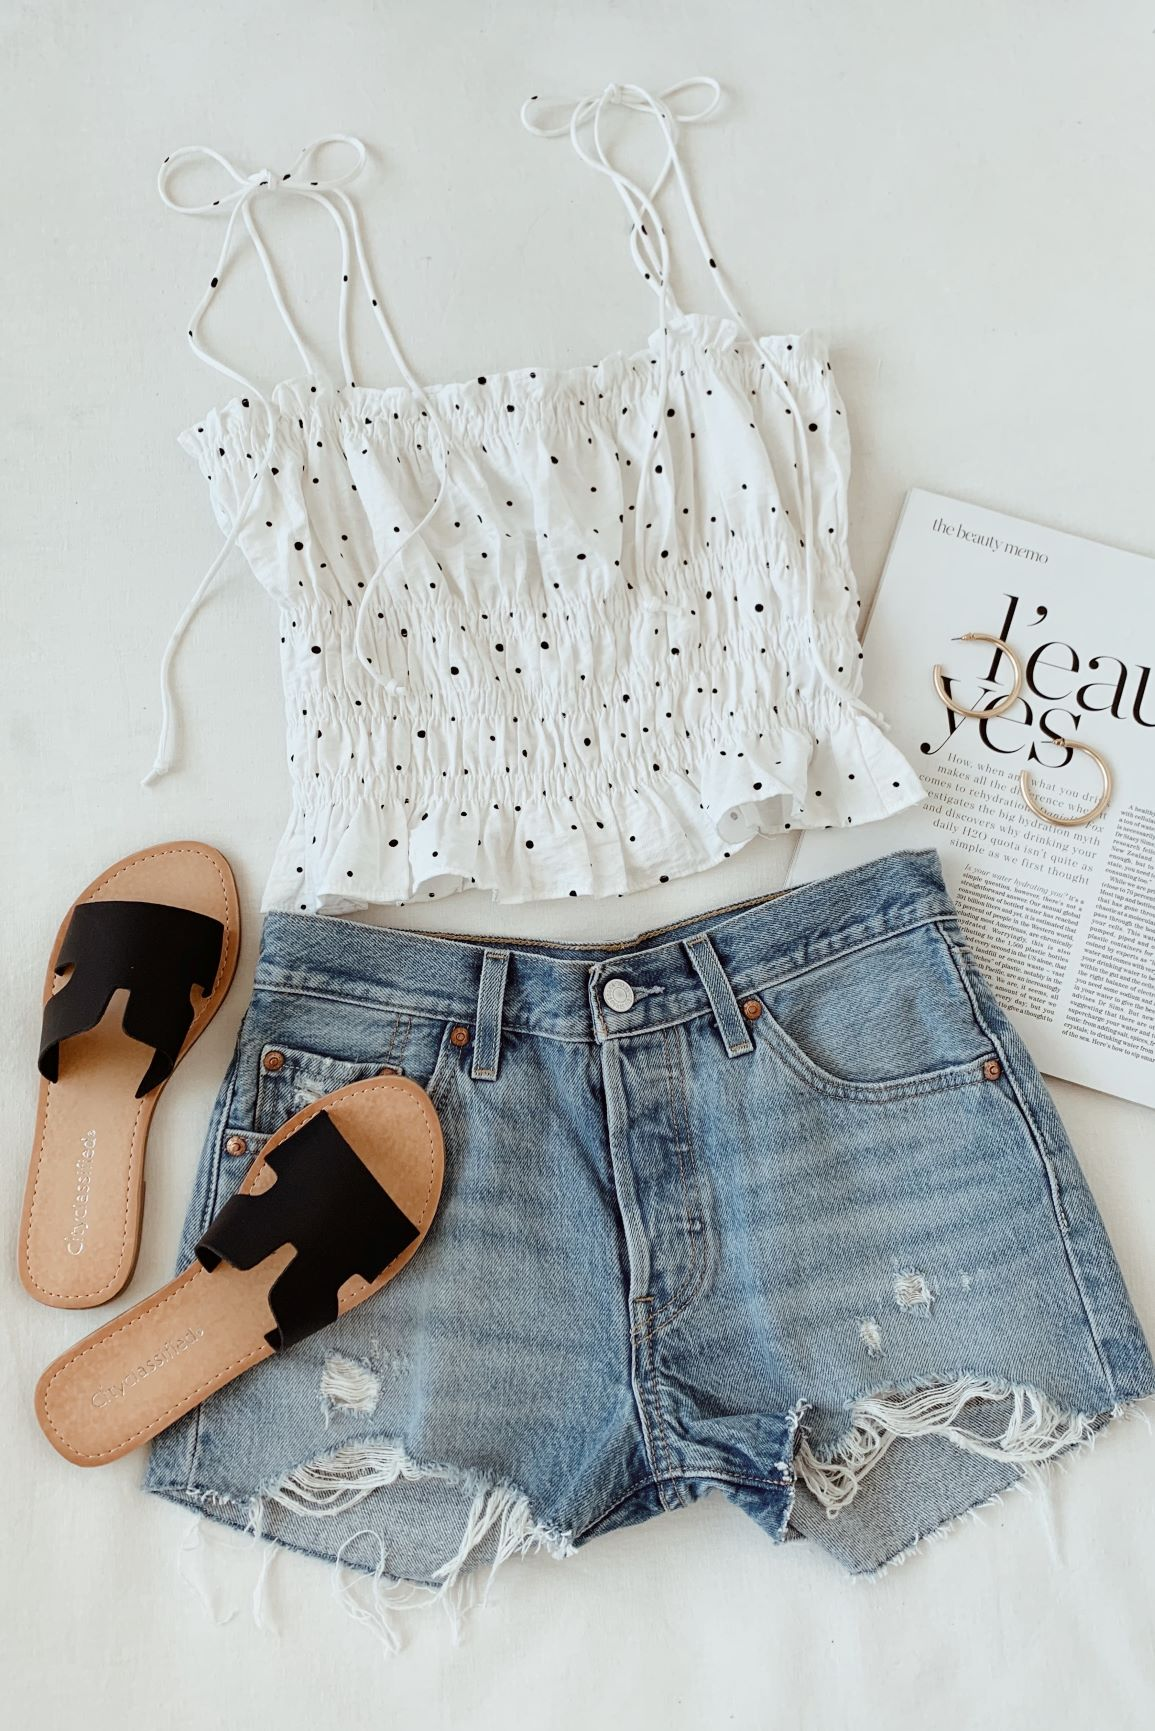 white smocked top with polka dots paired with denim cutoff shorts and black slide sandals